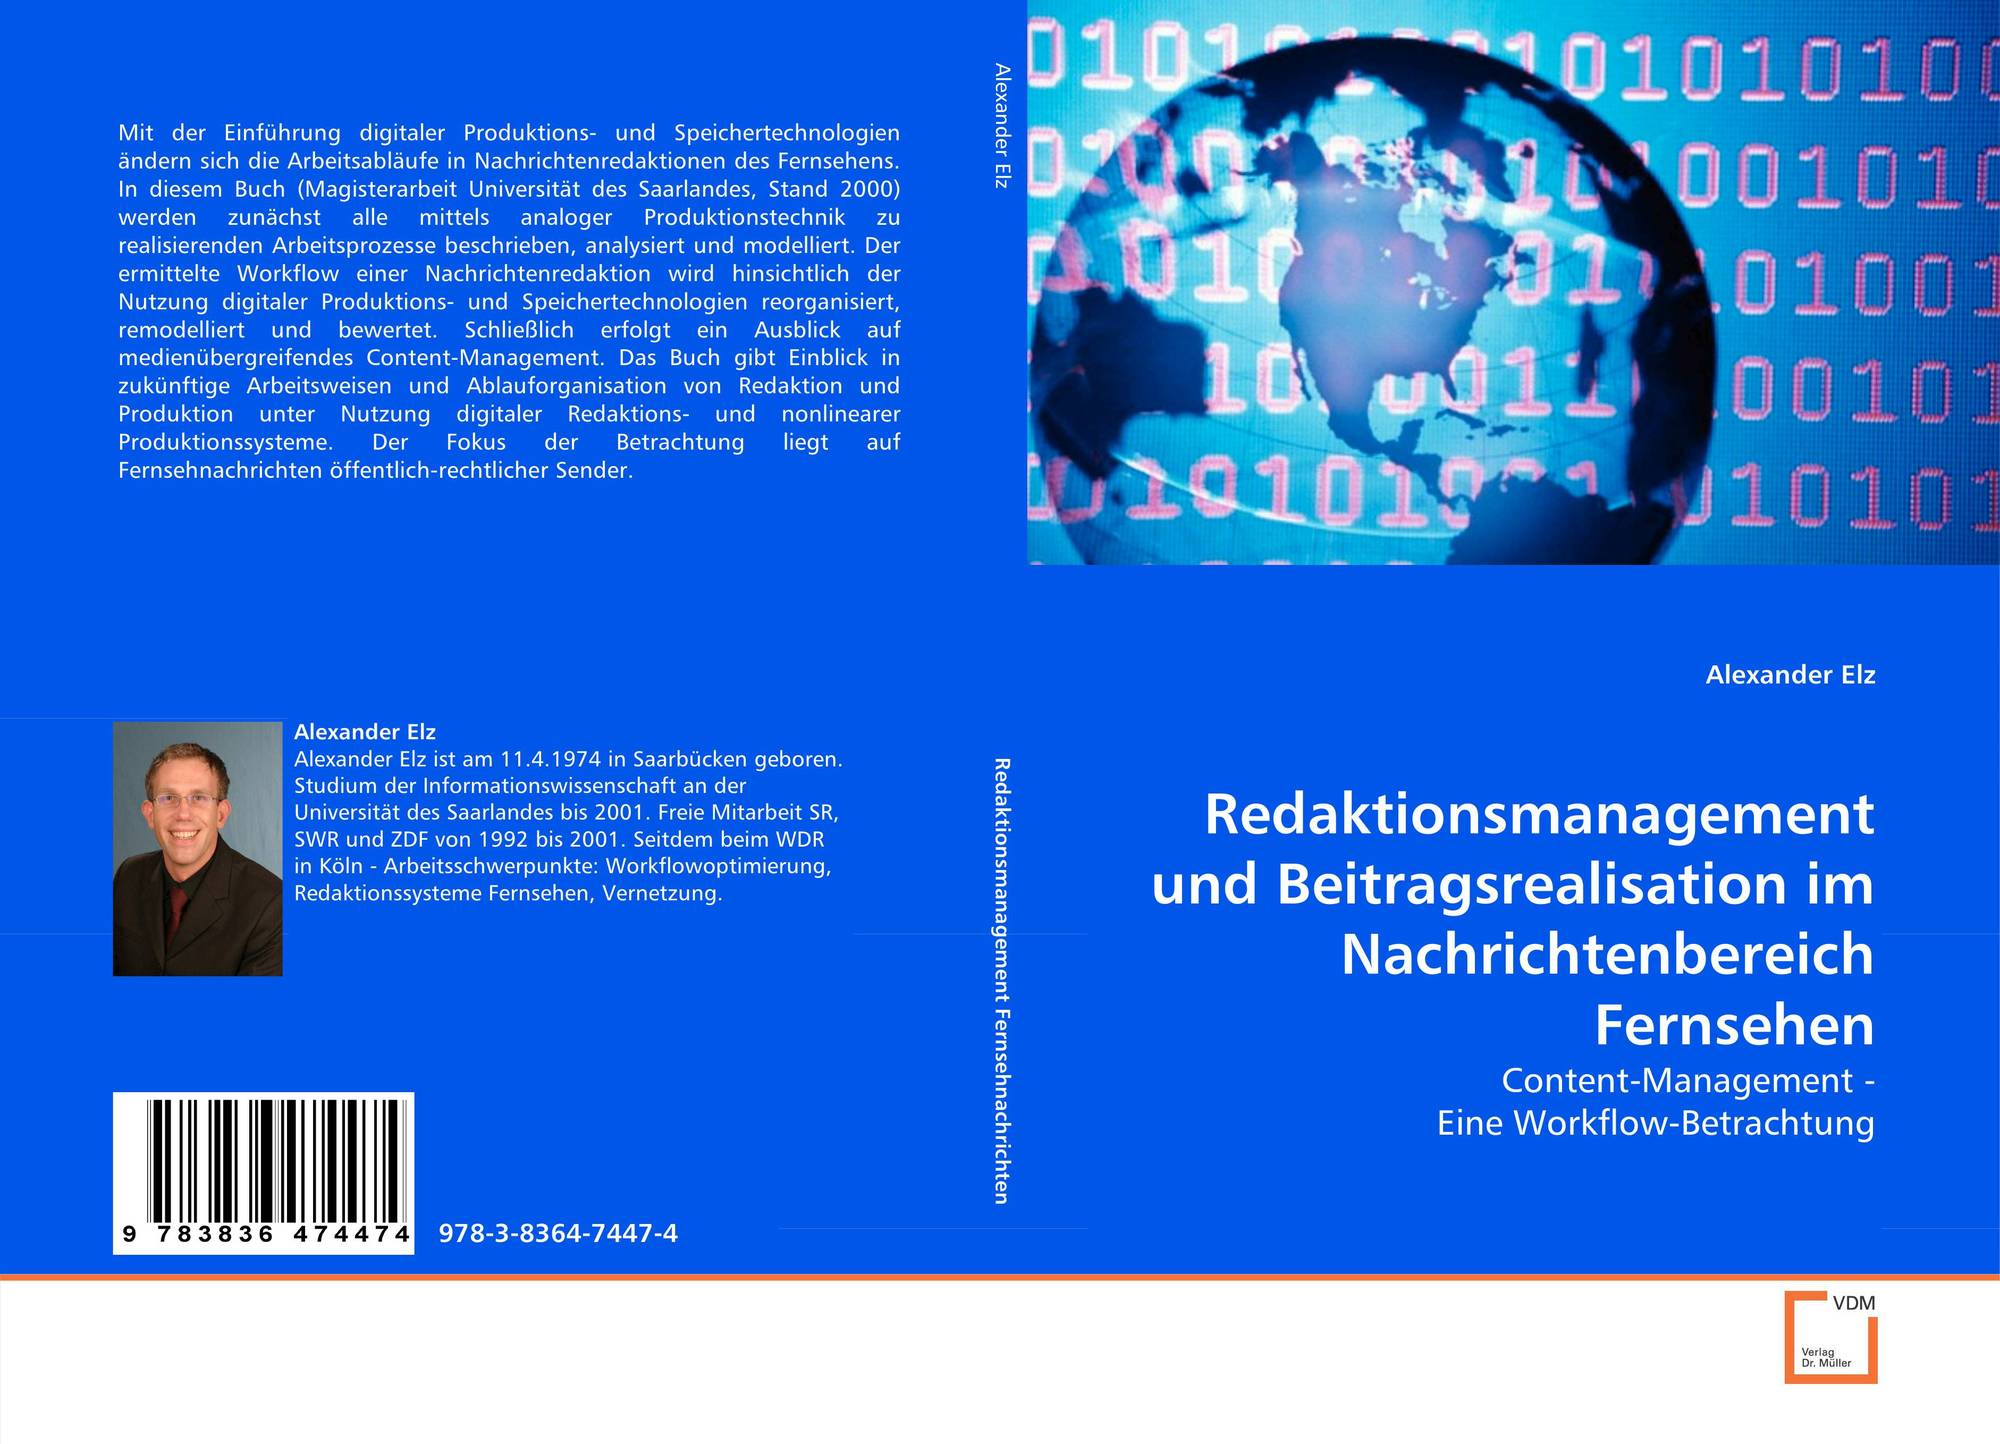 fernsehnachrichten essay Boulevardisierung von fernsehnachrichten download boulevardisierung von fernsehnachrichten or read online books in pdf, epub, tuebl, and mobi format click download or read online button to get boulevardisierung von fernsehnachrichten book now this site is like a library, use search box in the widget to get ebook that you want.